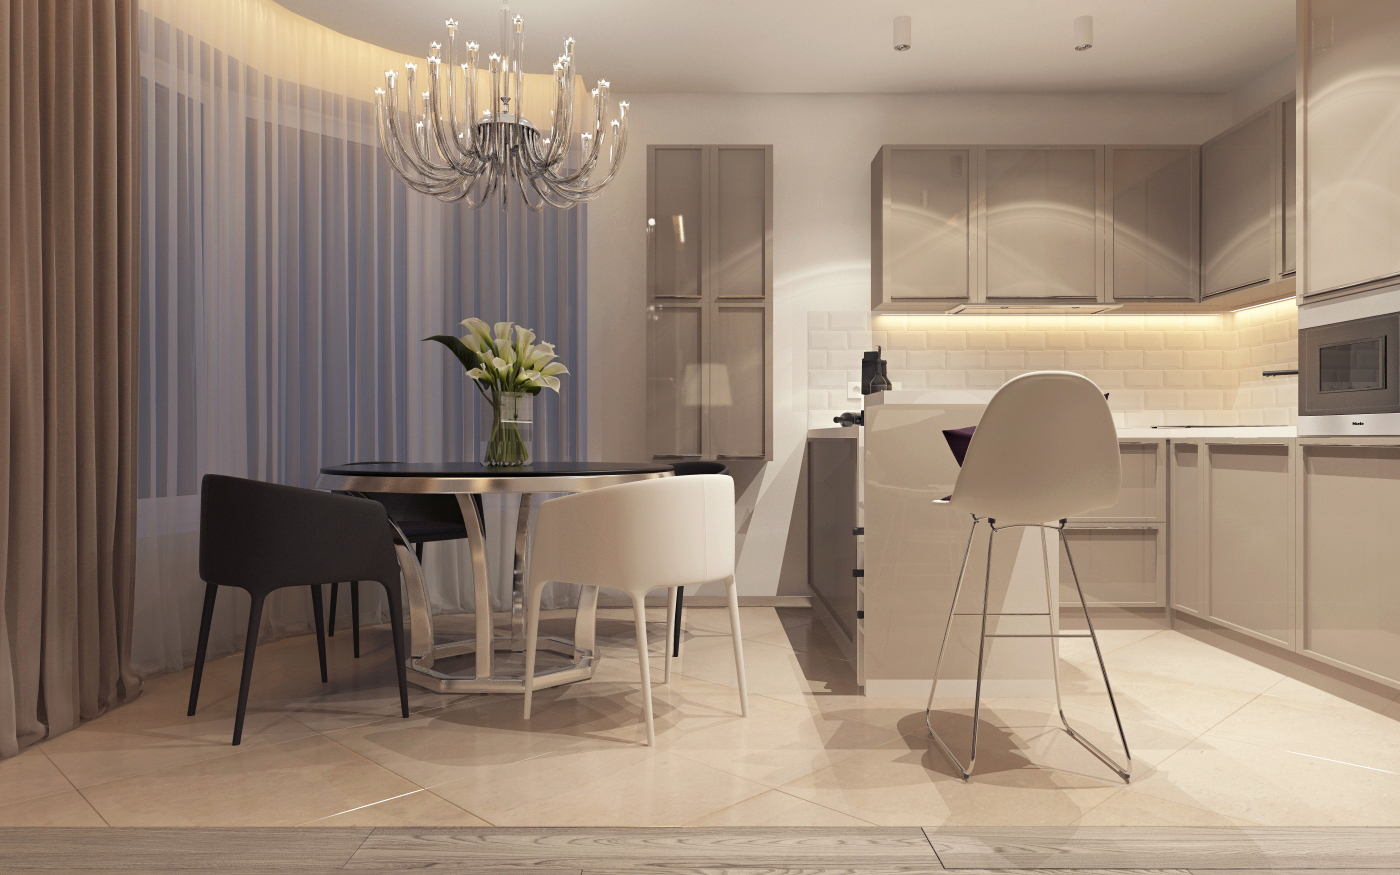 Simple apartment design applying with soft color accent for Kitchen set minimalist design